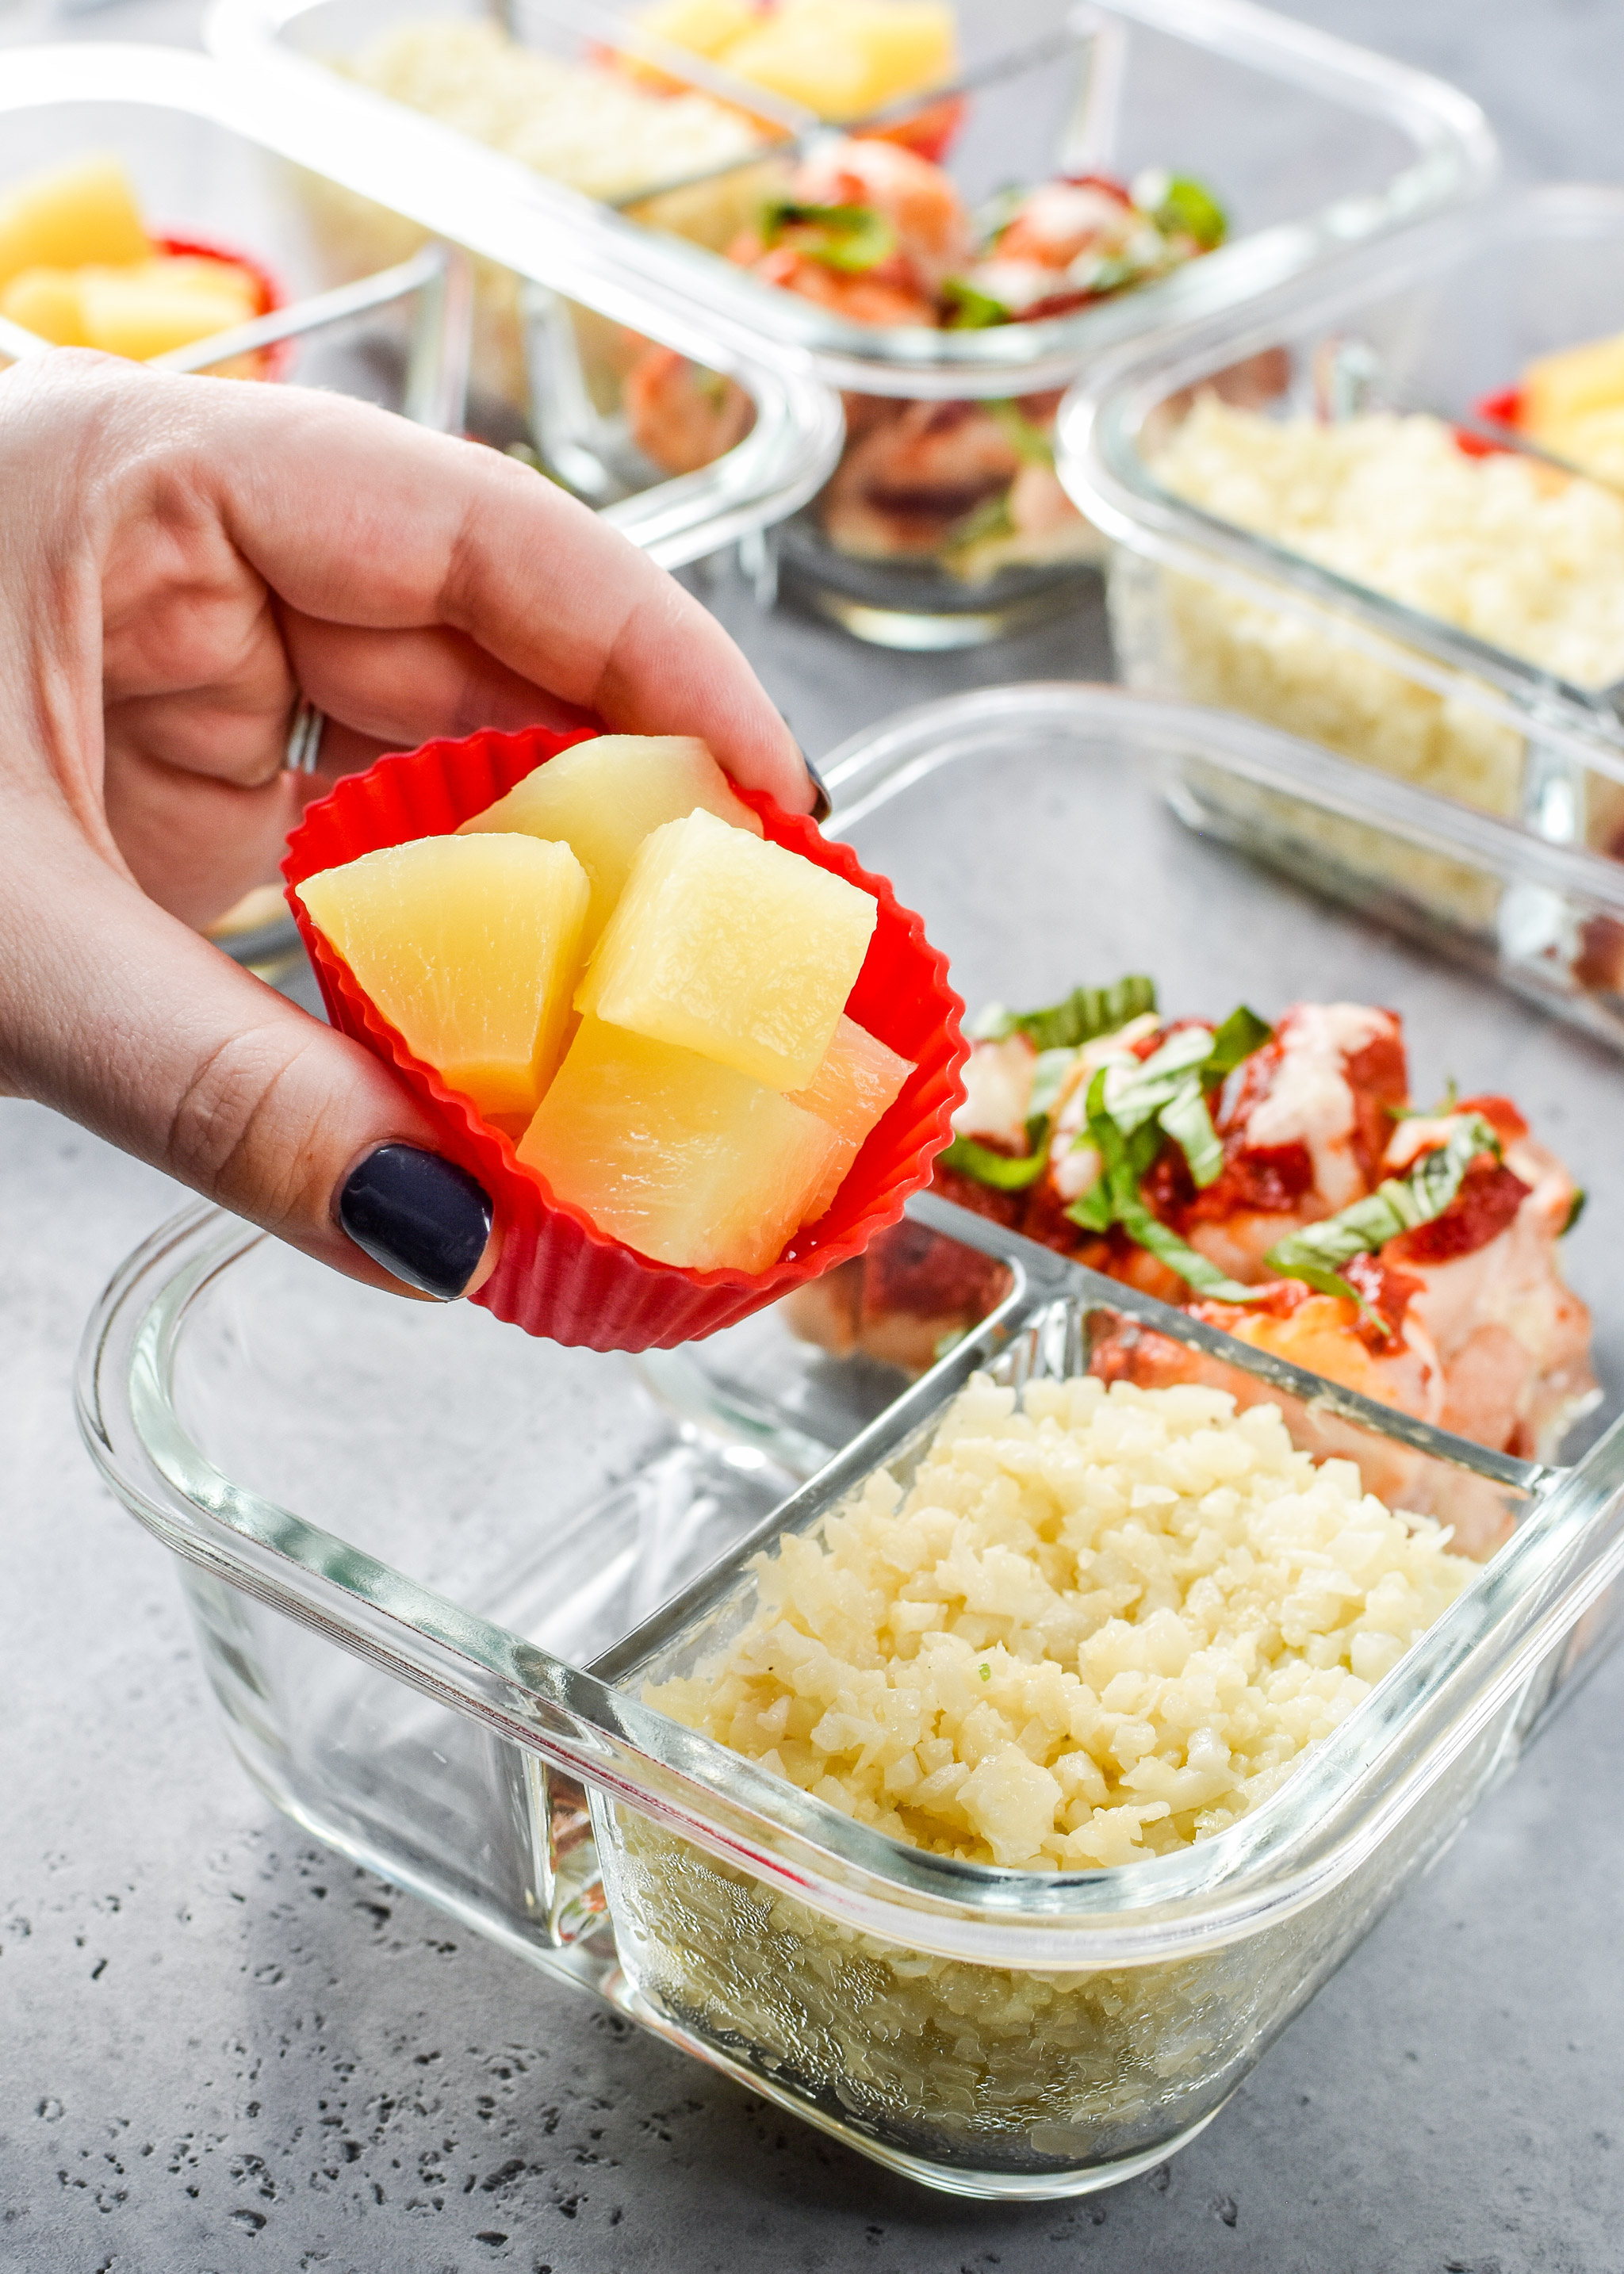 Take pineapple in and out of the glass container easily to microwave the rest of the Pizza Chicken Roll Up Meal Prep